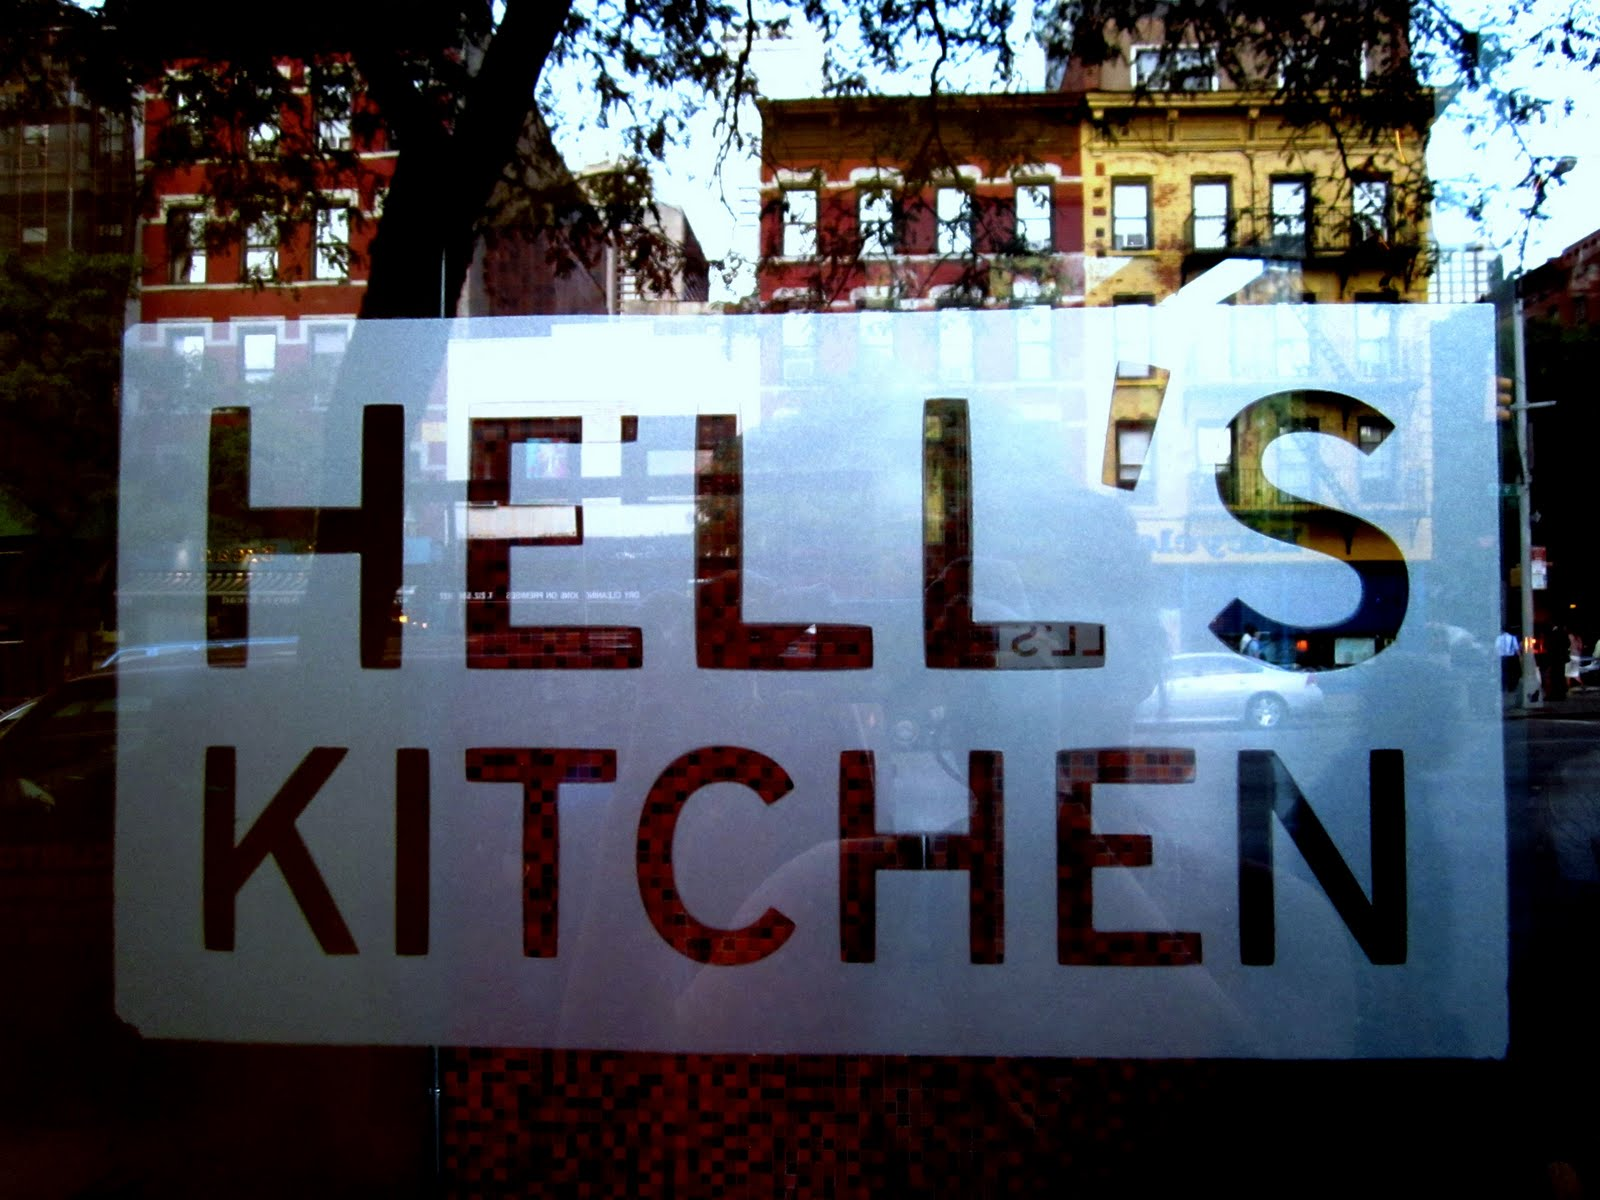 Hell39;s Kitchen is a cozy Mexican restaurant located in Hell39;s Kitchen